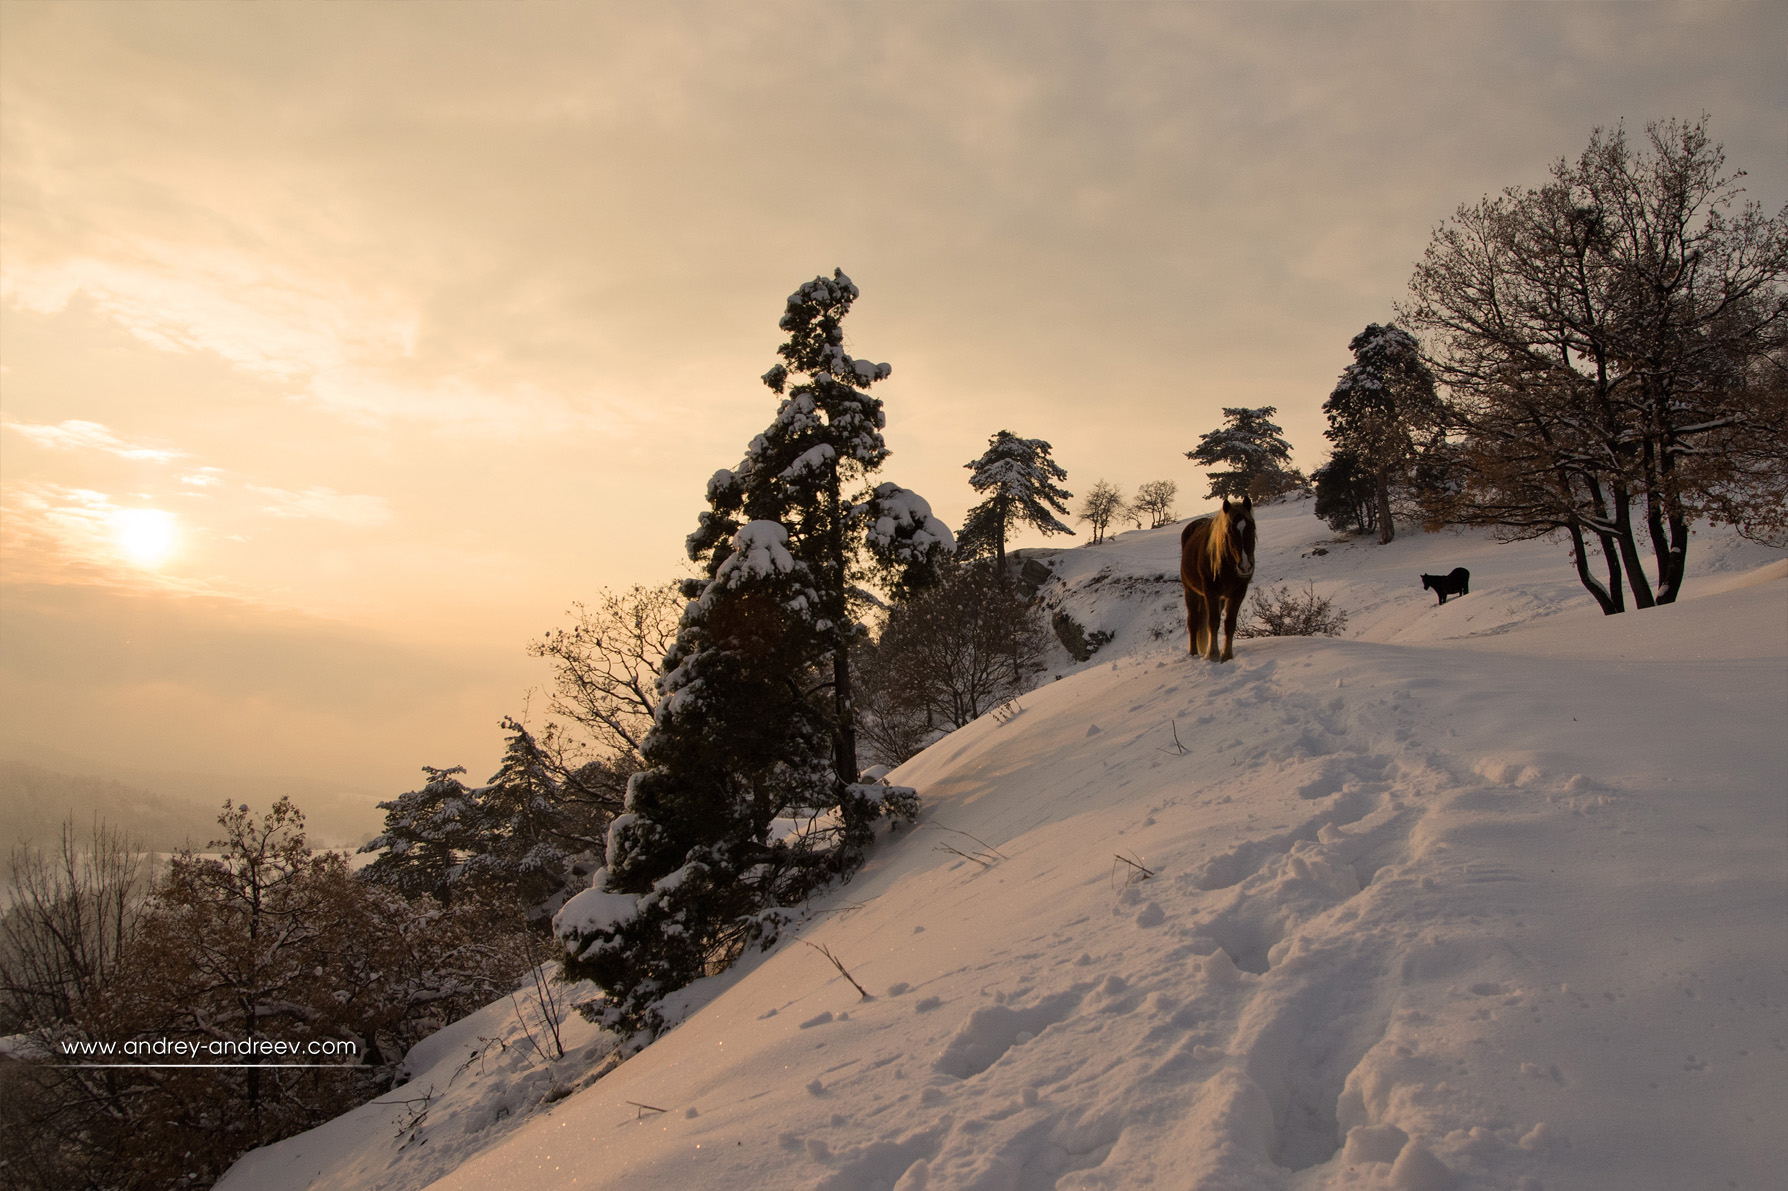 A lonely horse met us on sunset at Tsepina, Rhodope mountains, Bulgaria